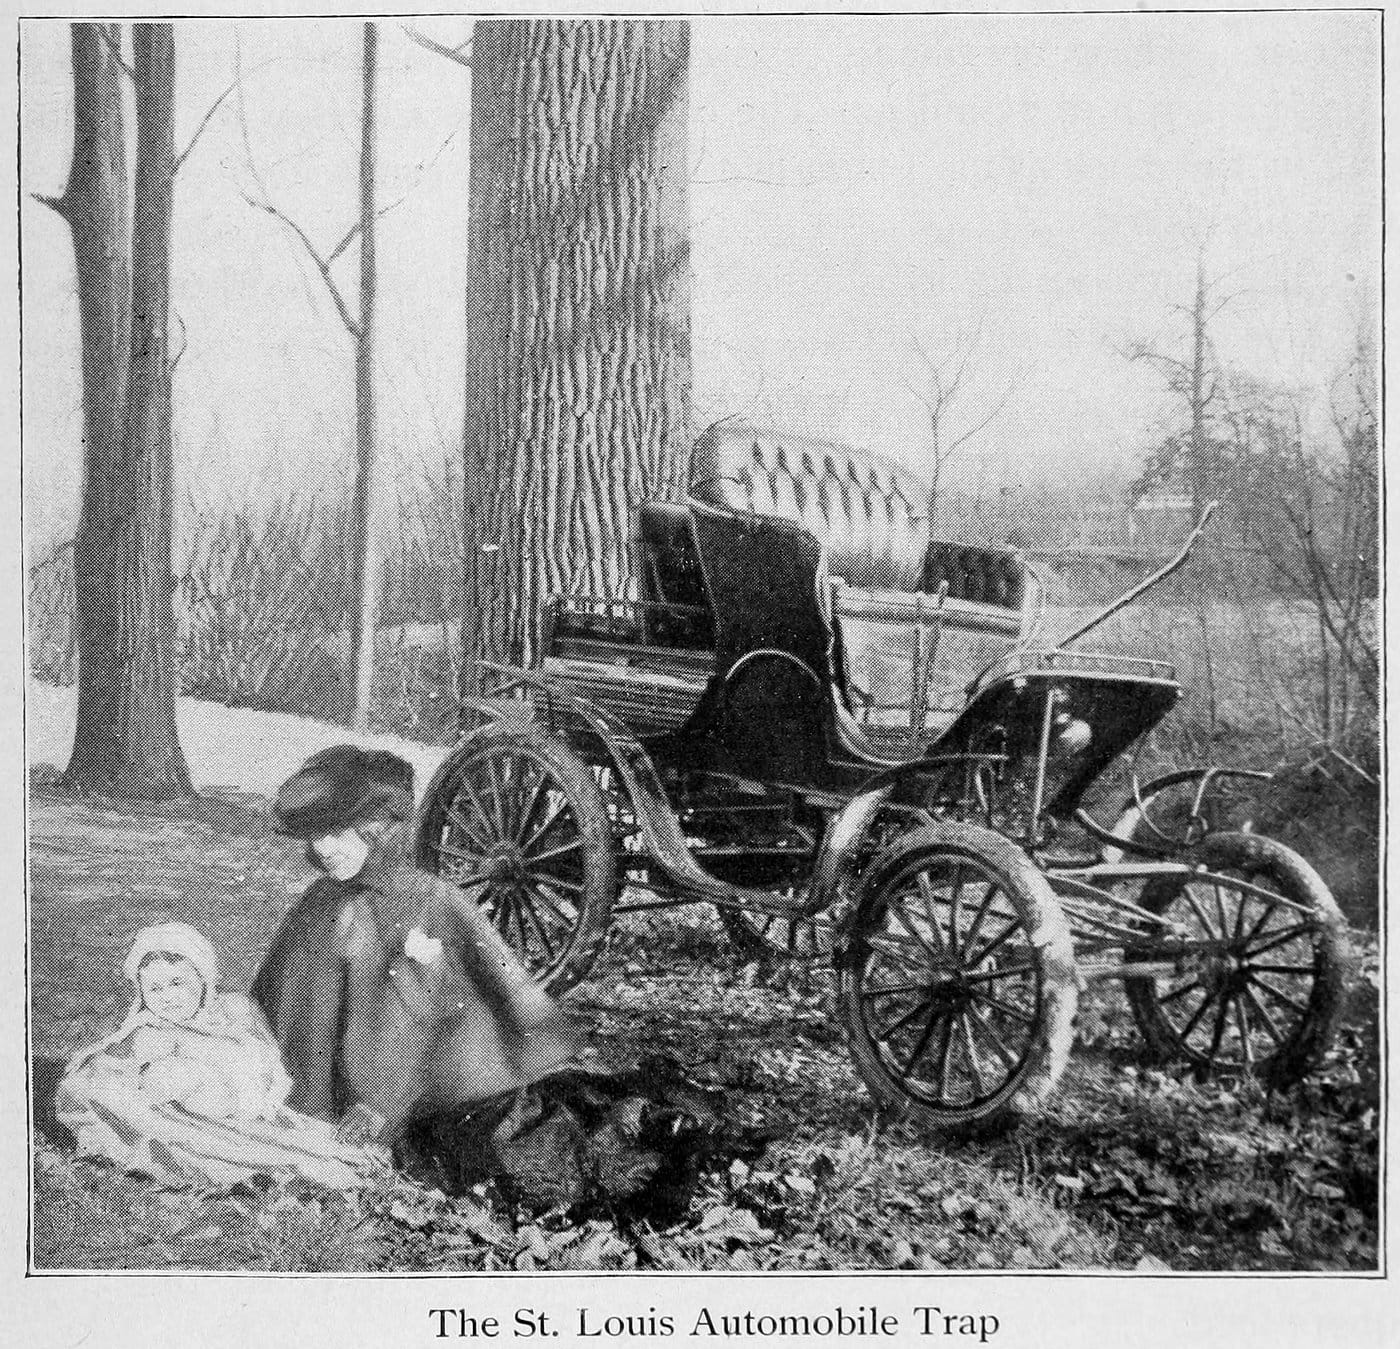 The St. Louis Automobile Trap (1901)